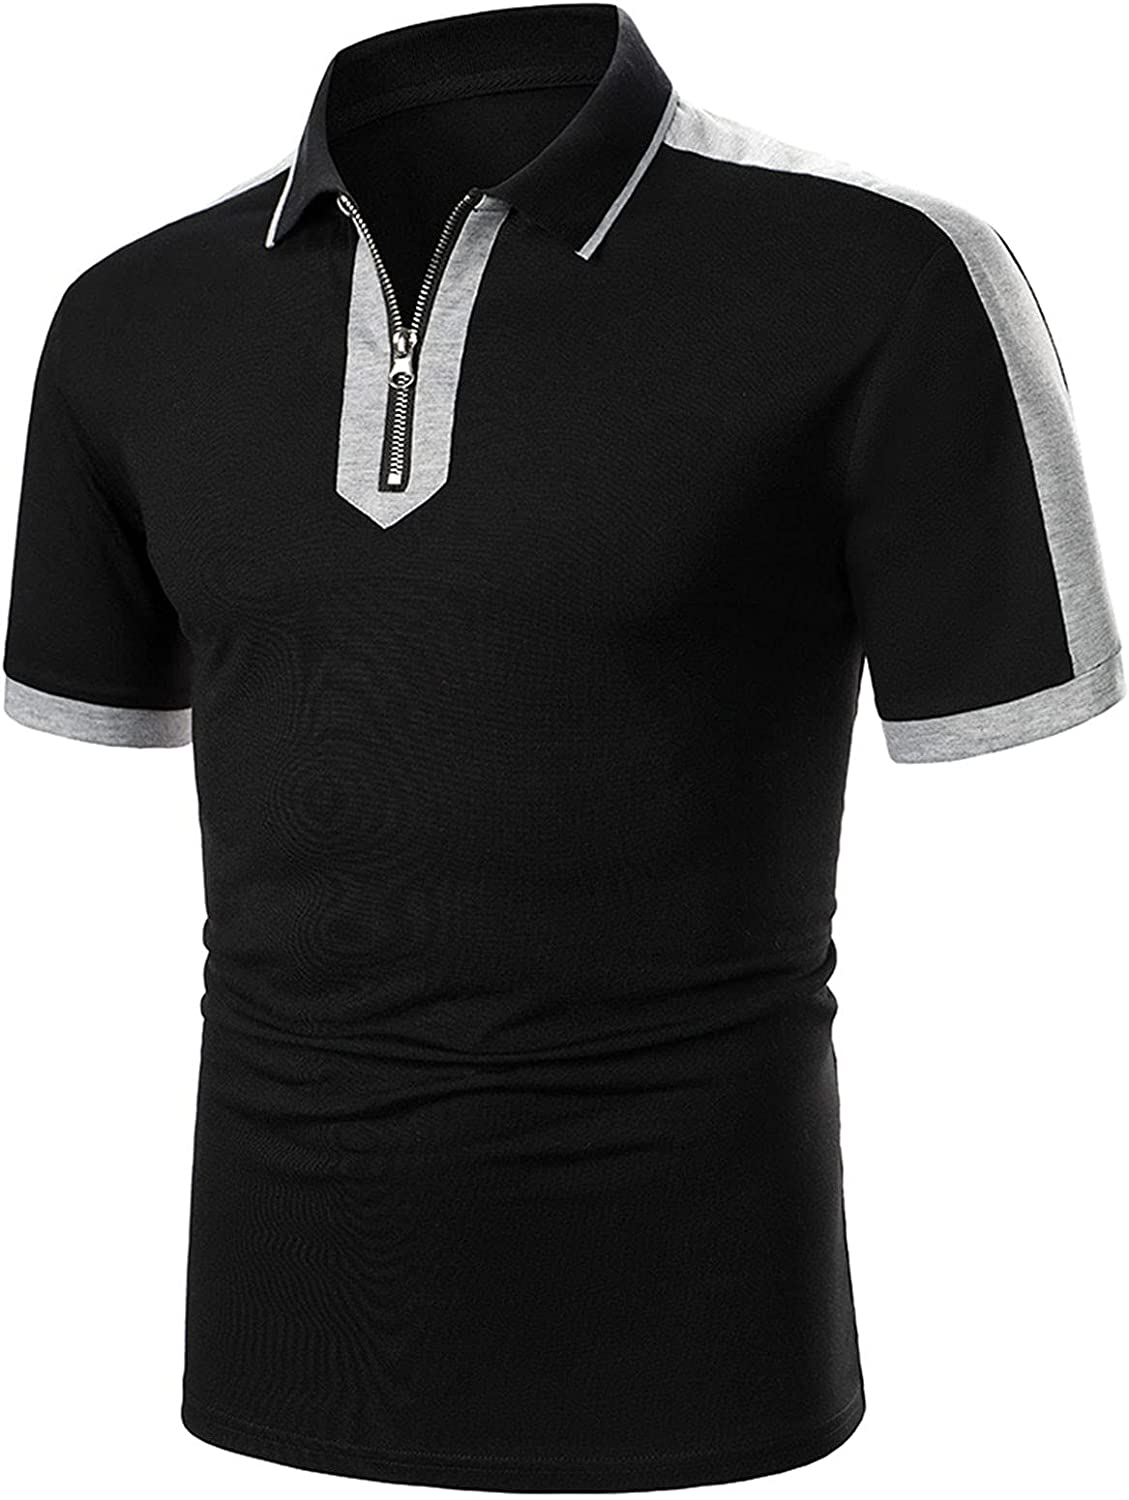 Polo Shirt for Free Shipping New Men Classic Fit Jersey Top Short Sleeve Casual 100% quality warranty! La